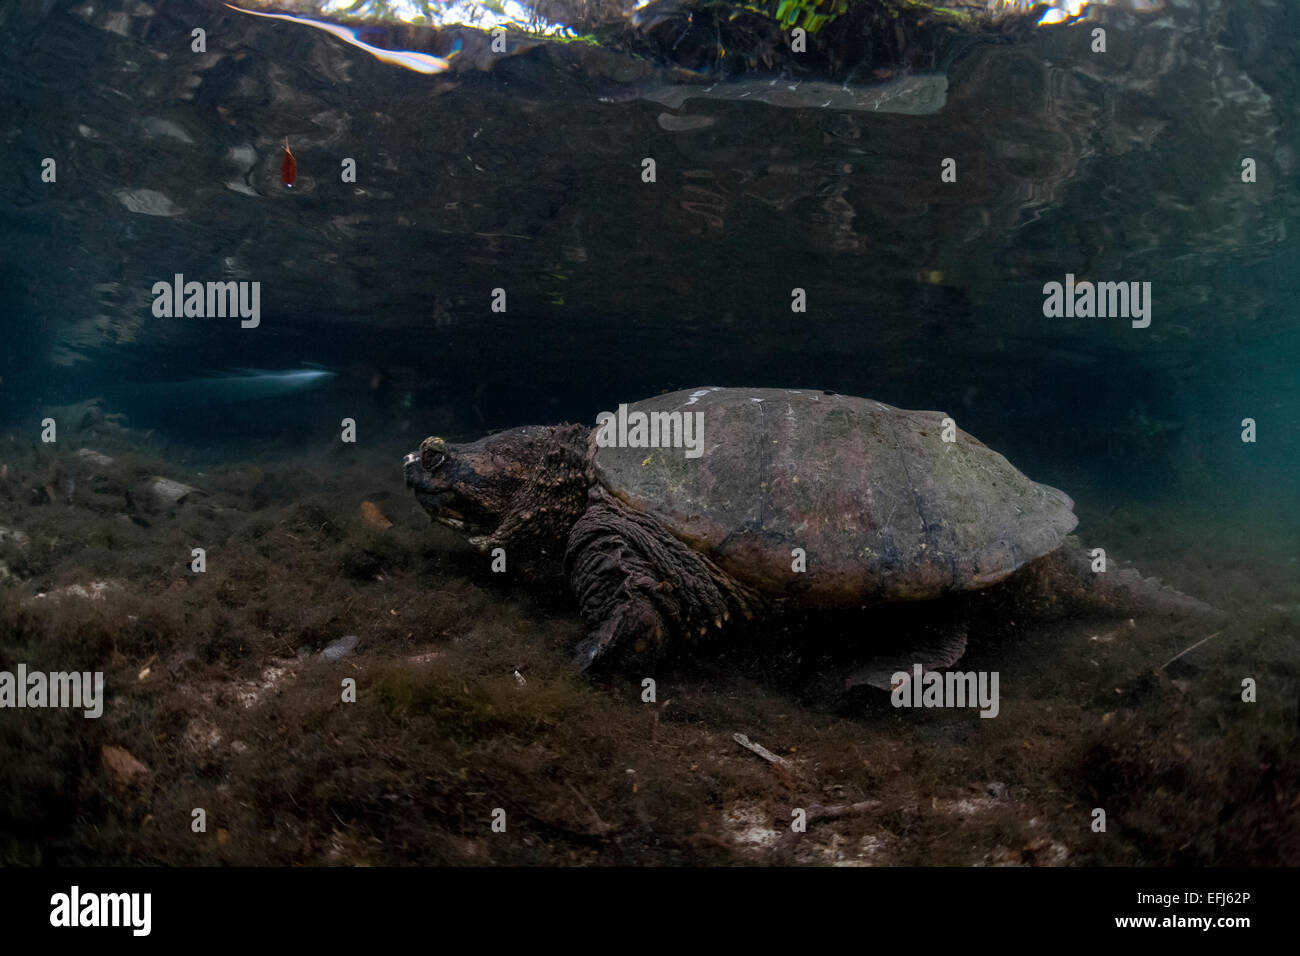 Common Snapping Turtle (Chelydra serpentina), Crystal River, Florida, United States Stock Photo